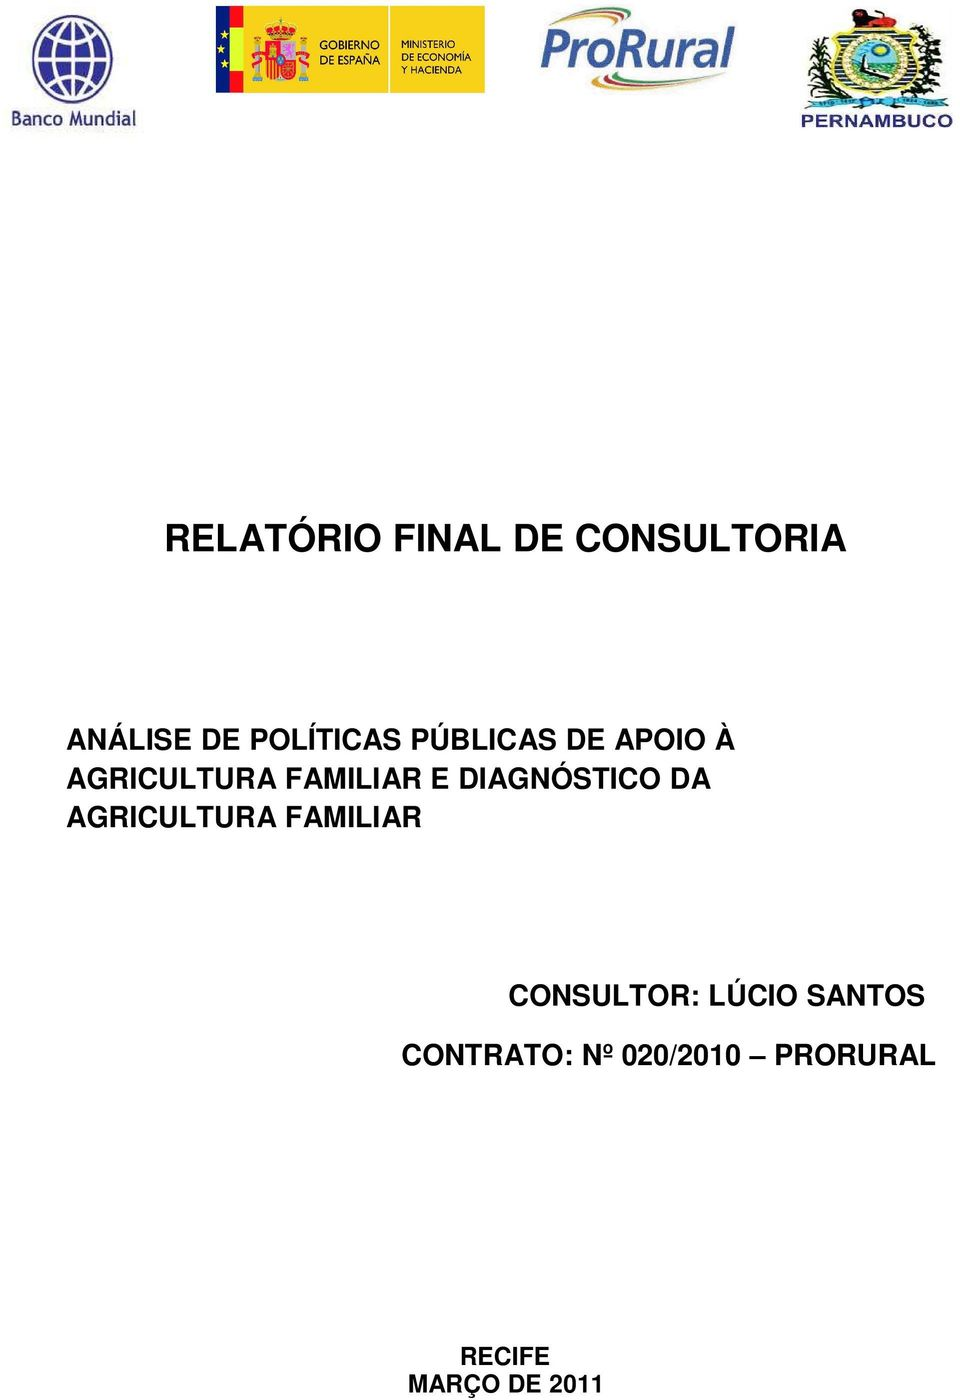 DIAGNÓSTICO DA AGRICULTURA FAMILIAR CONSULTOR: